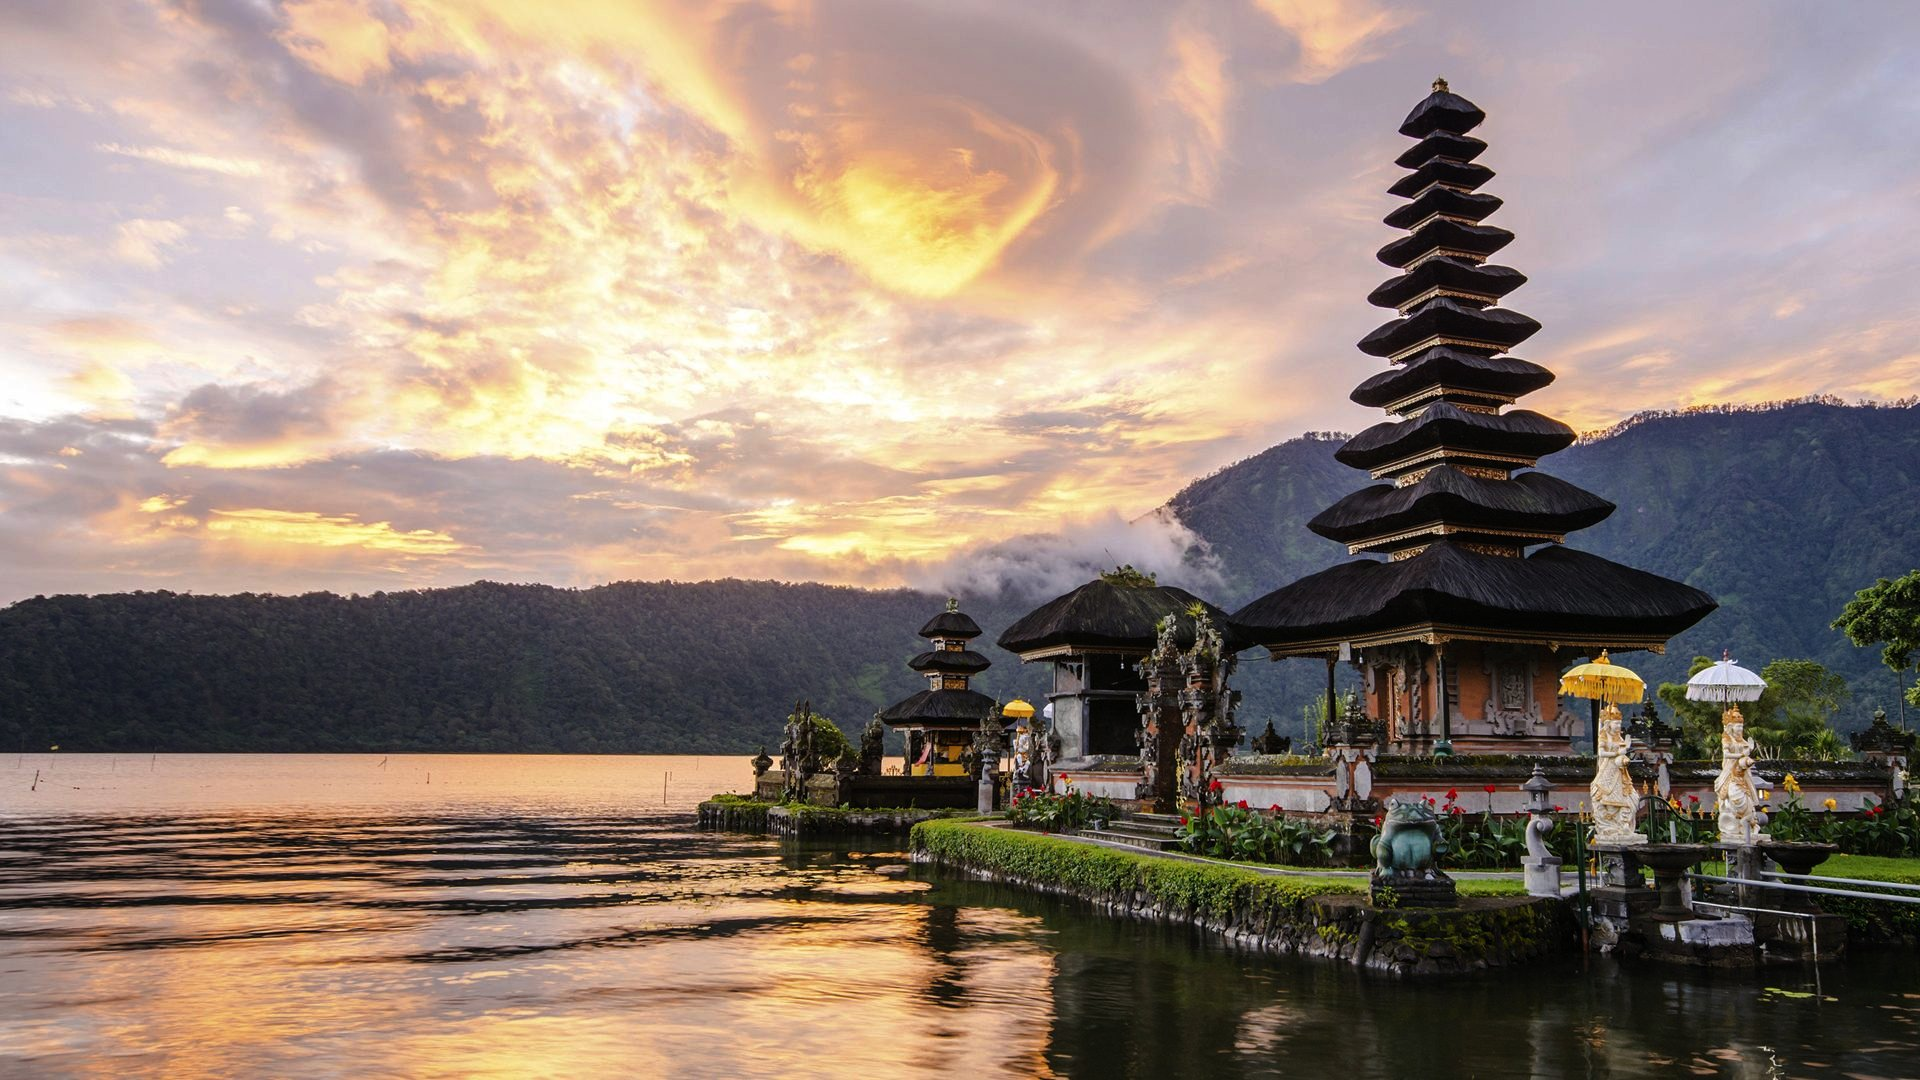 Bali off the beaten track